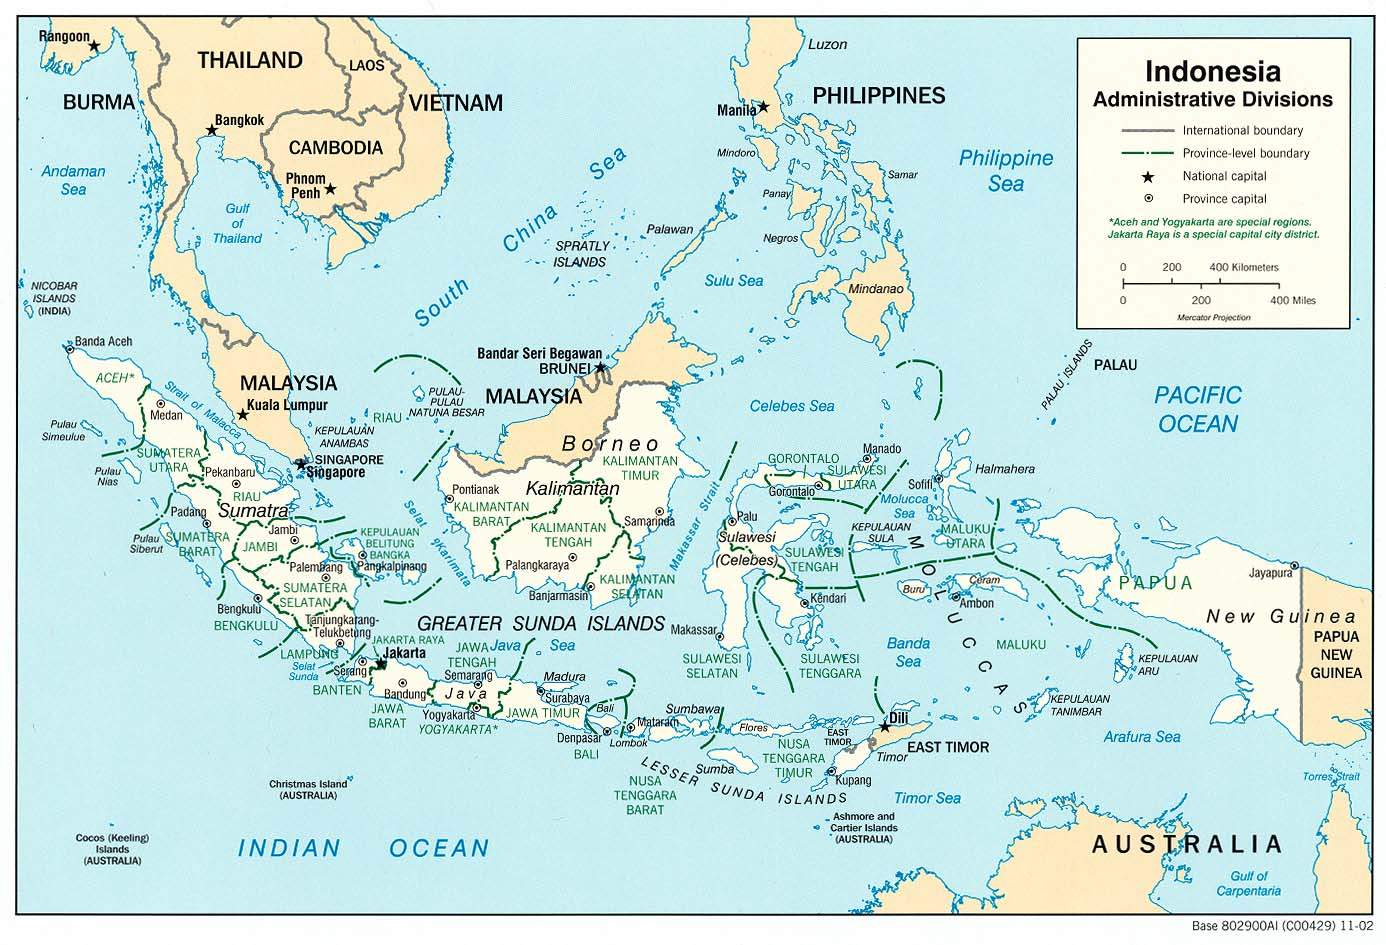 Indonesia Adminstrative Districts